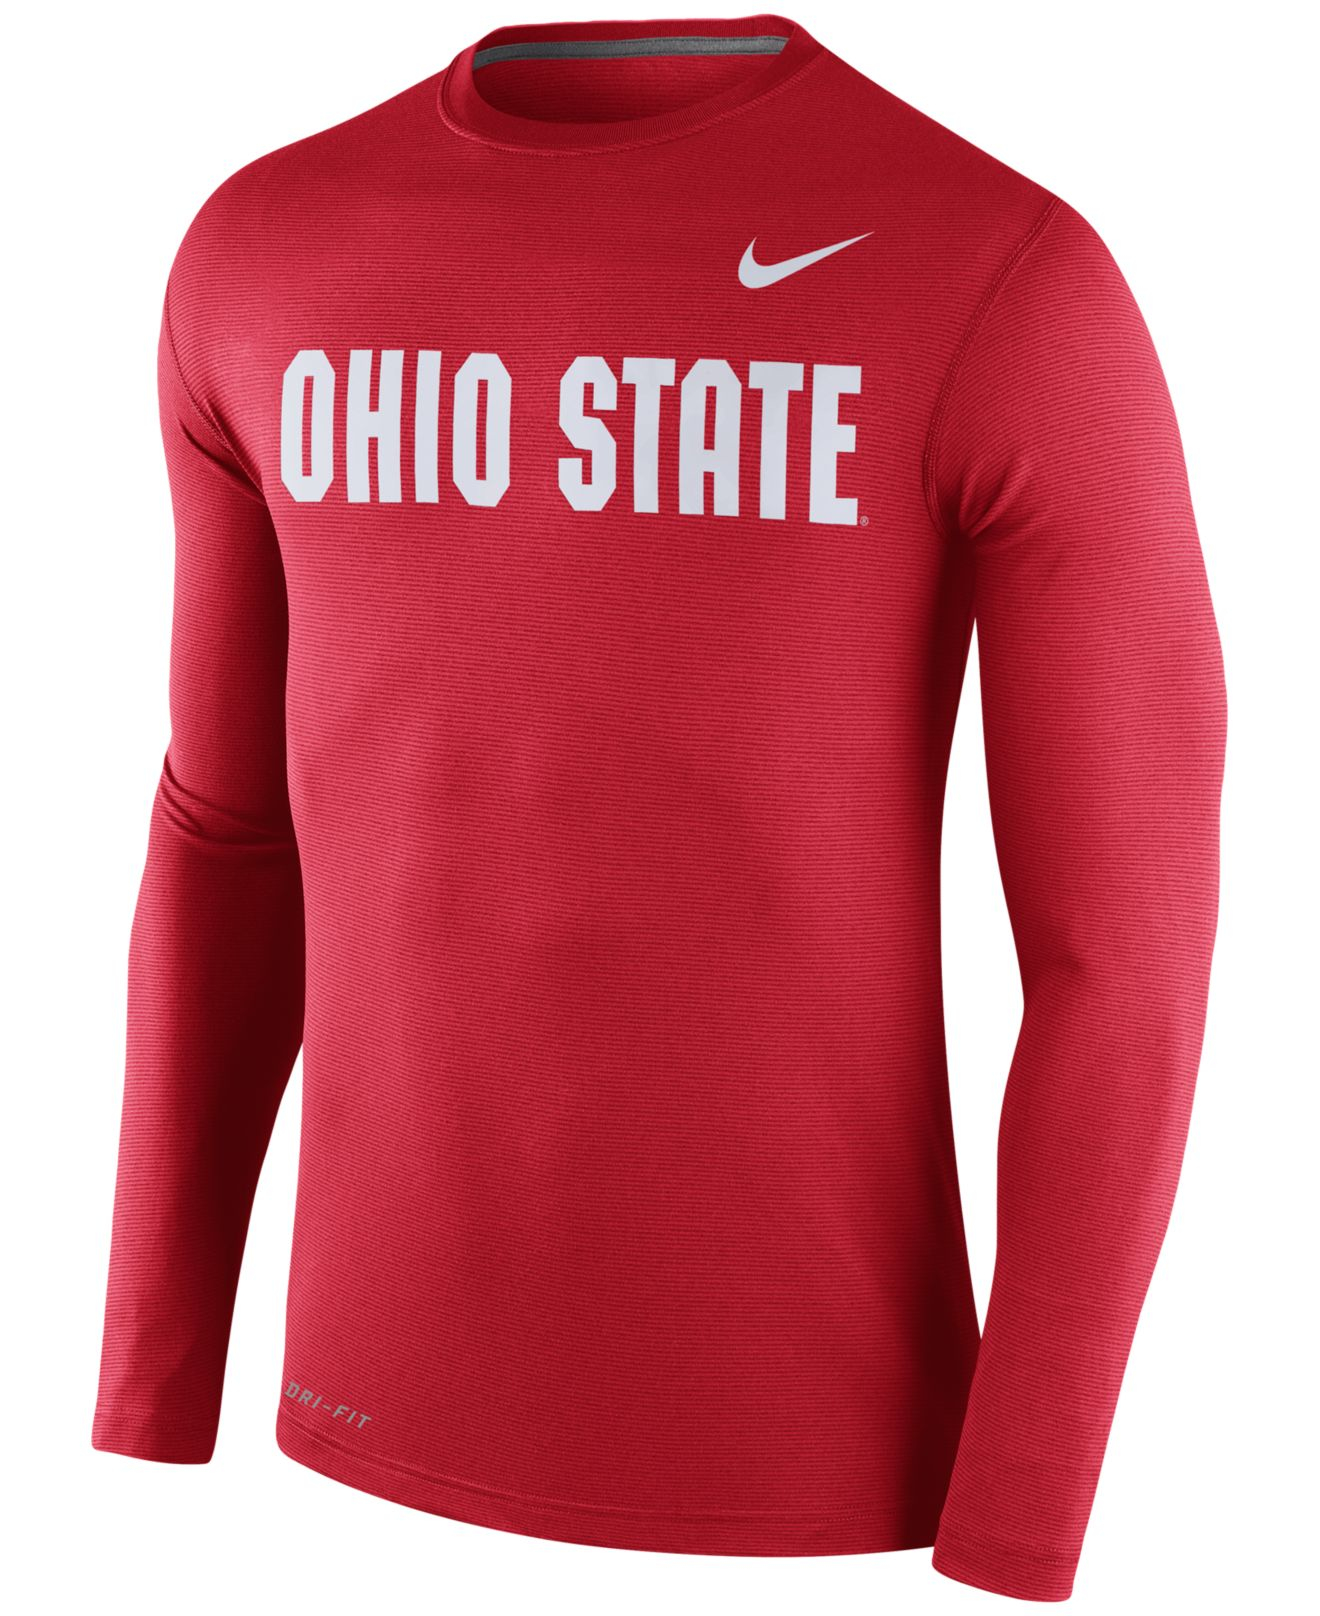 Nike men 39 s long sleeve ohio state buckeyes dri fit t shirt for Ohio state shirts mens